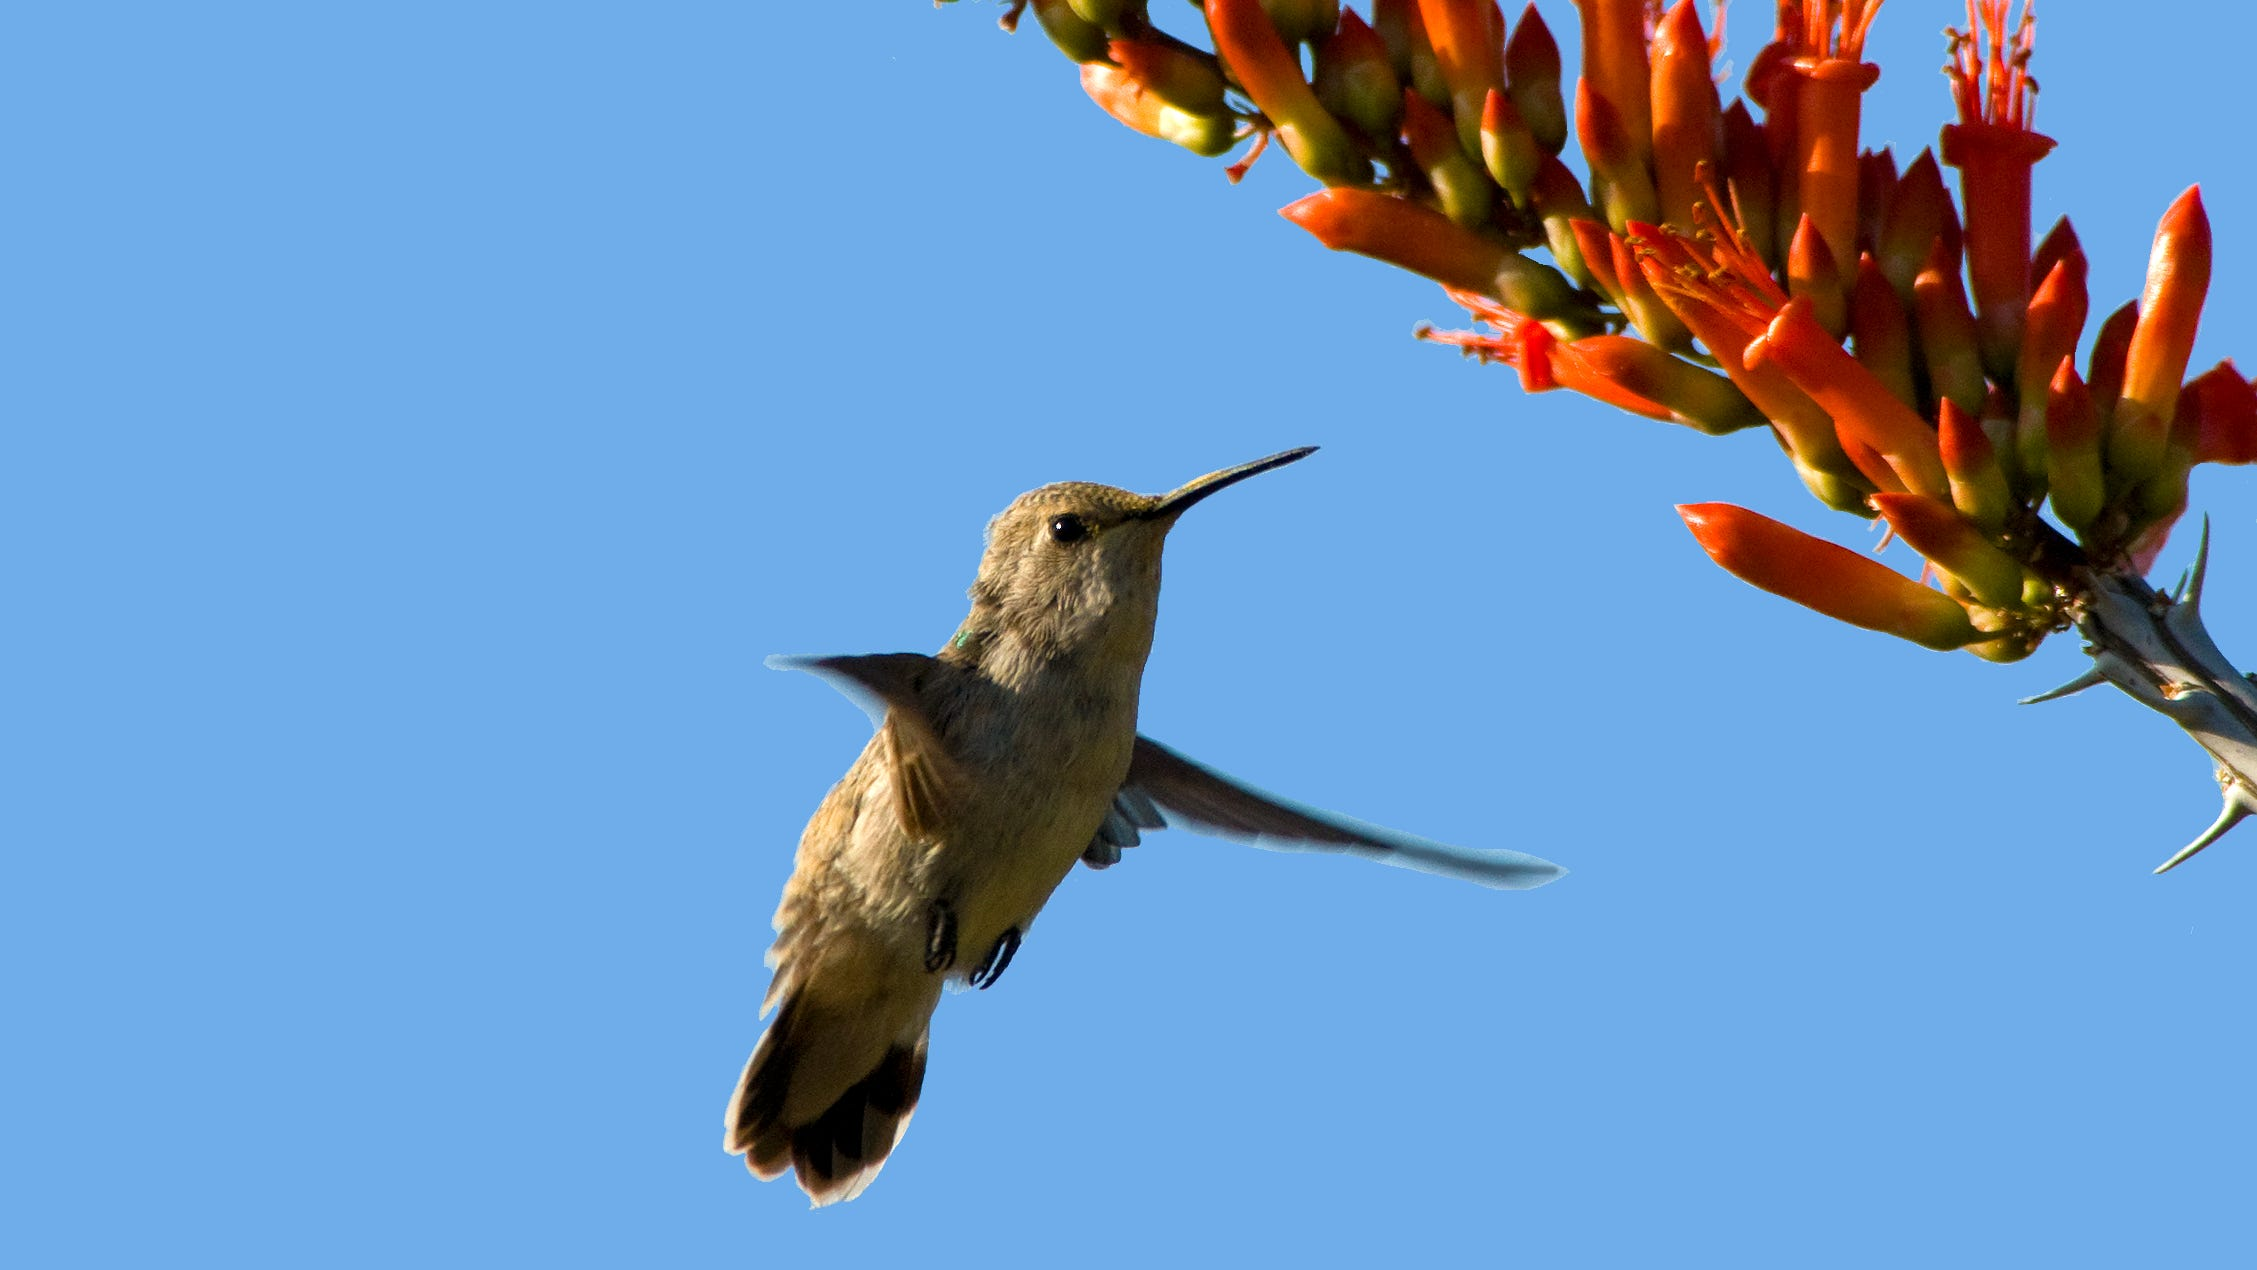 The Coachella Valley's hummingbirds are in trouble. Here's how you can help